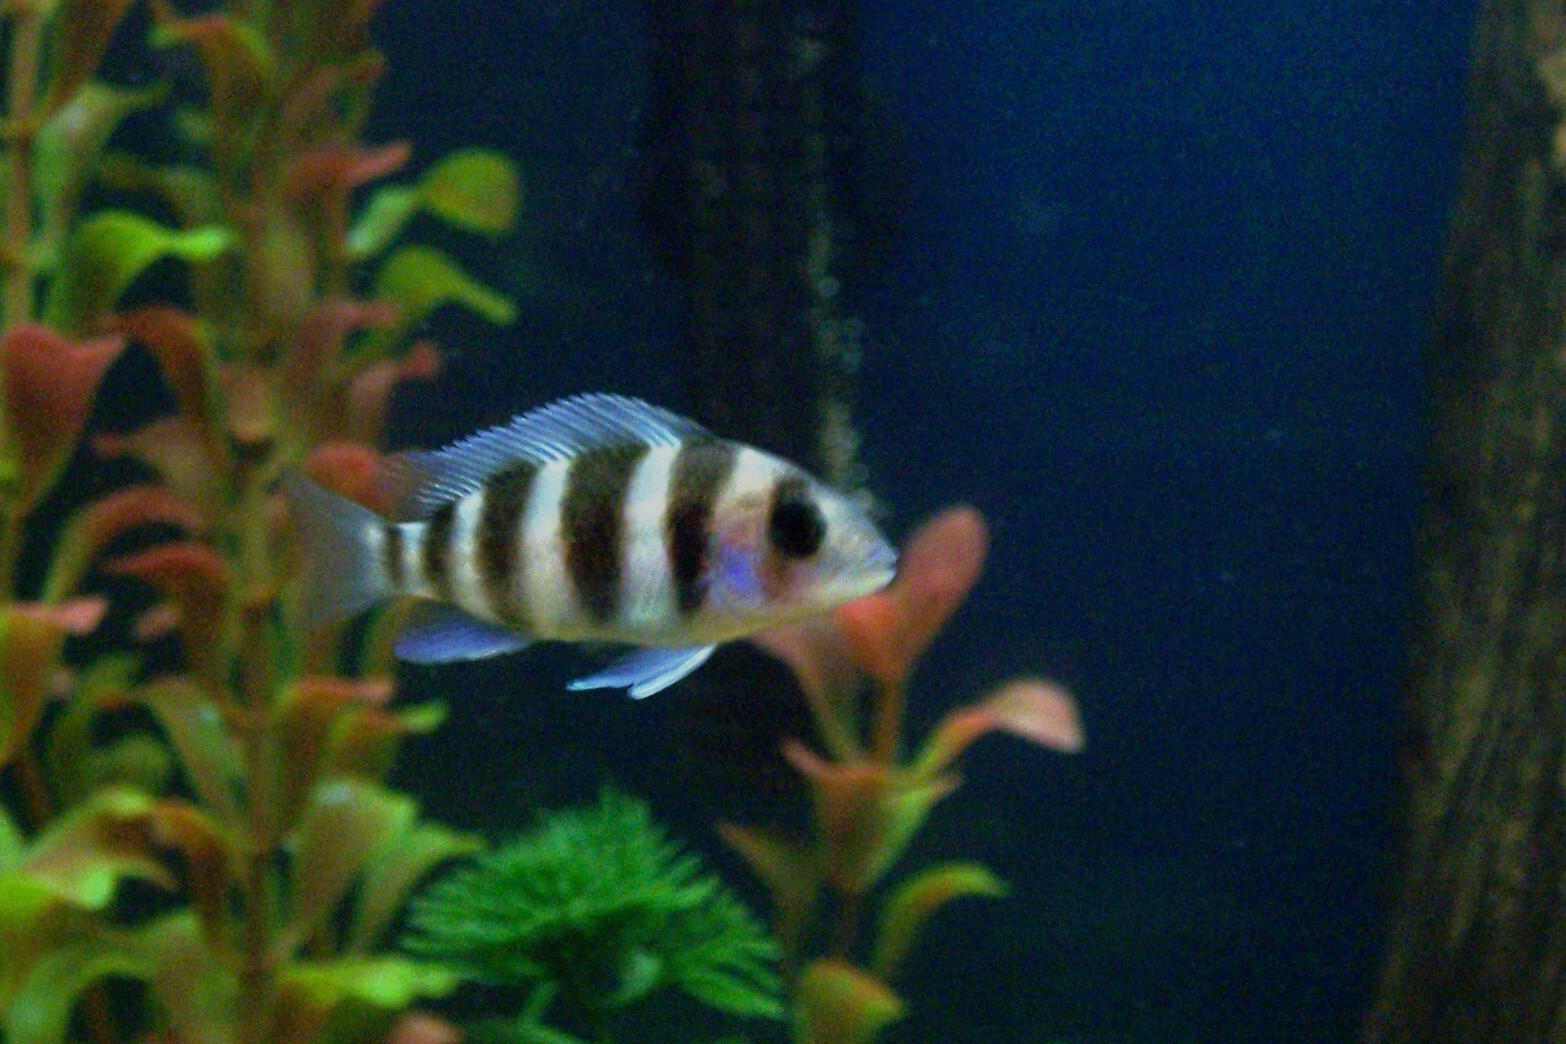 Baby Frontosa Cichlid cichlids.com: baby fro...